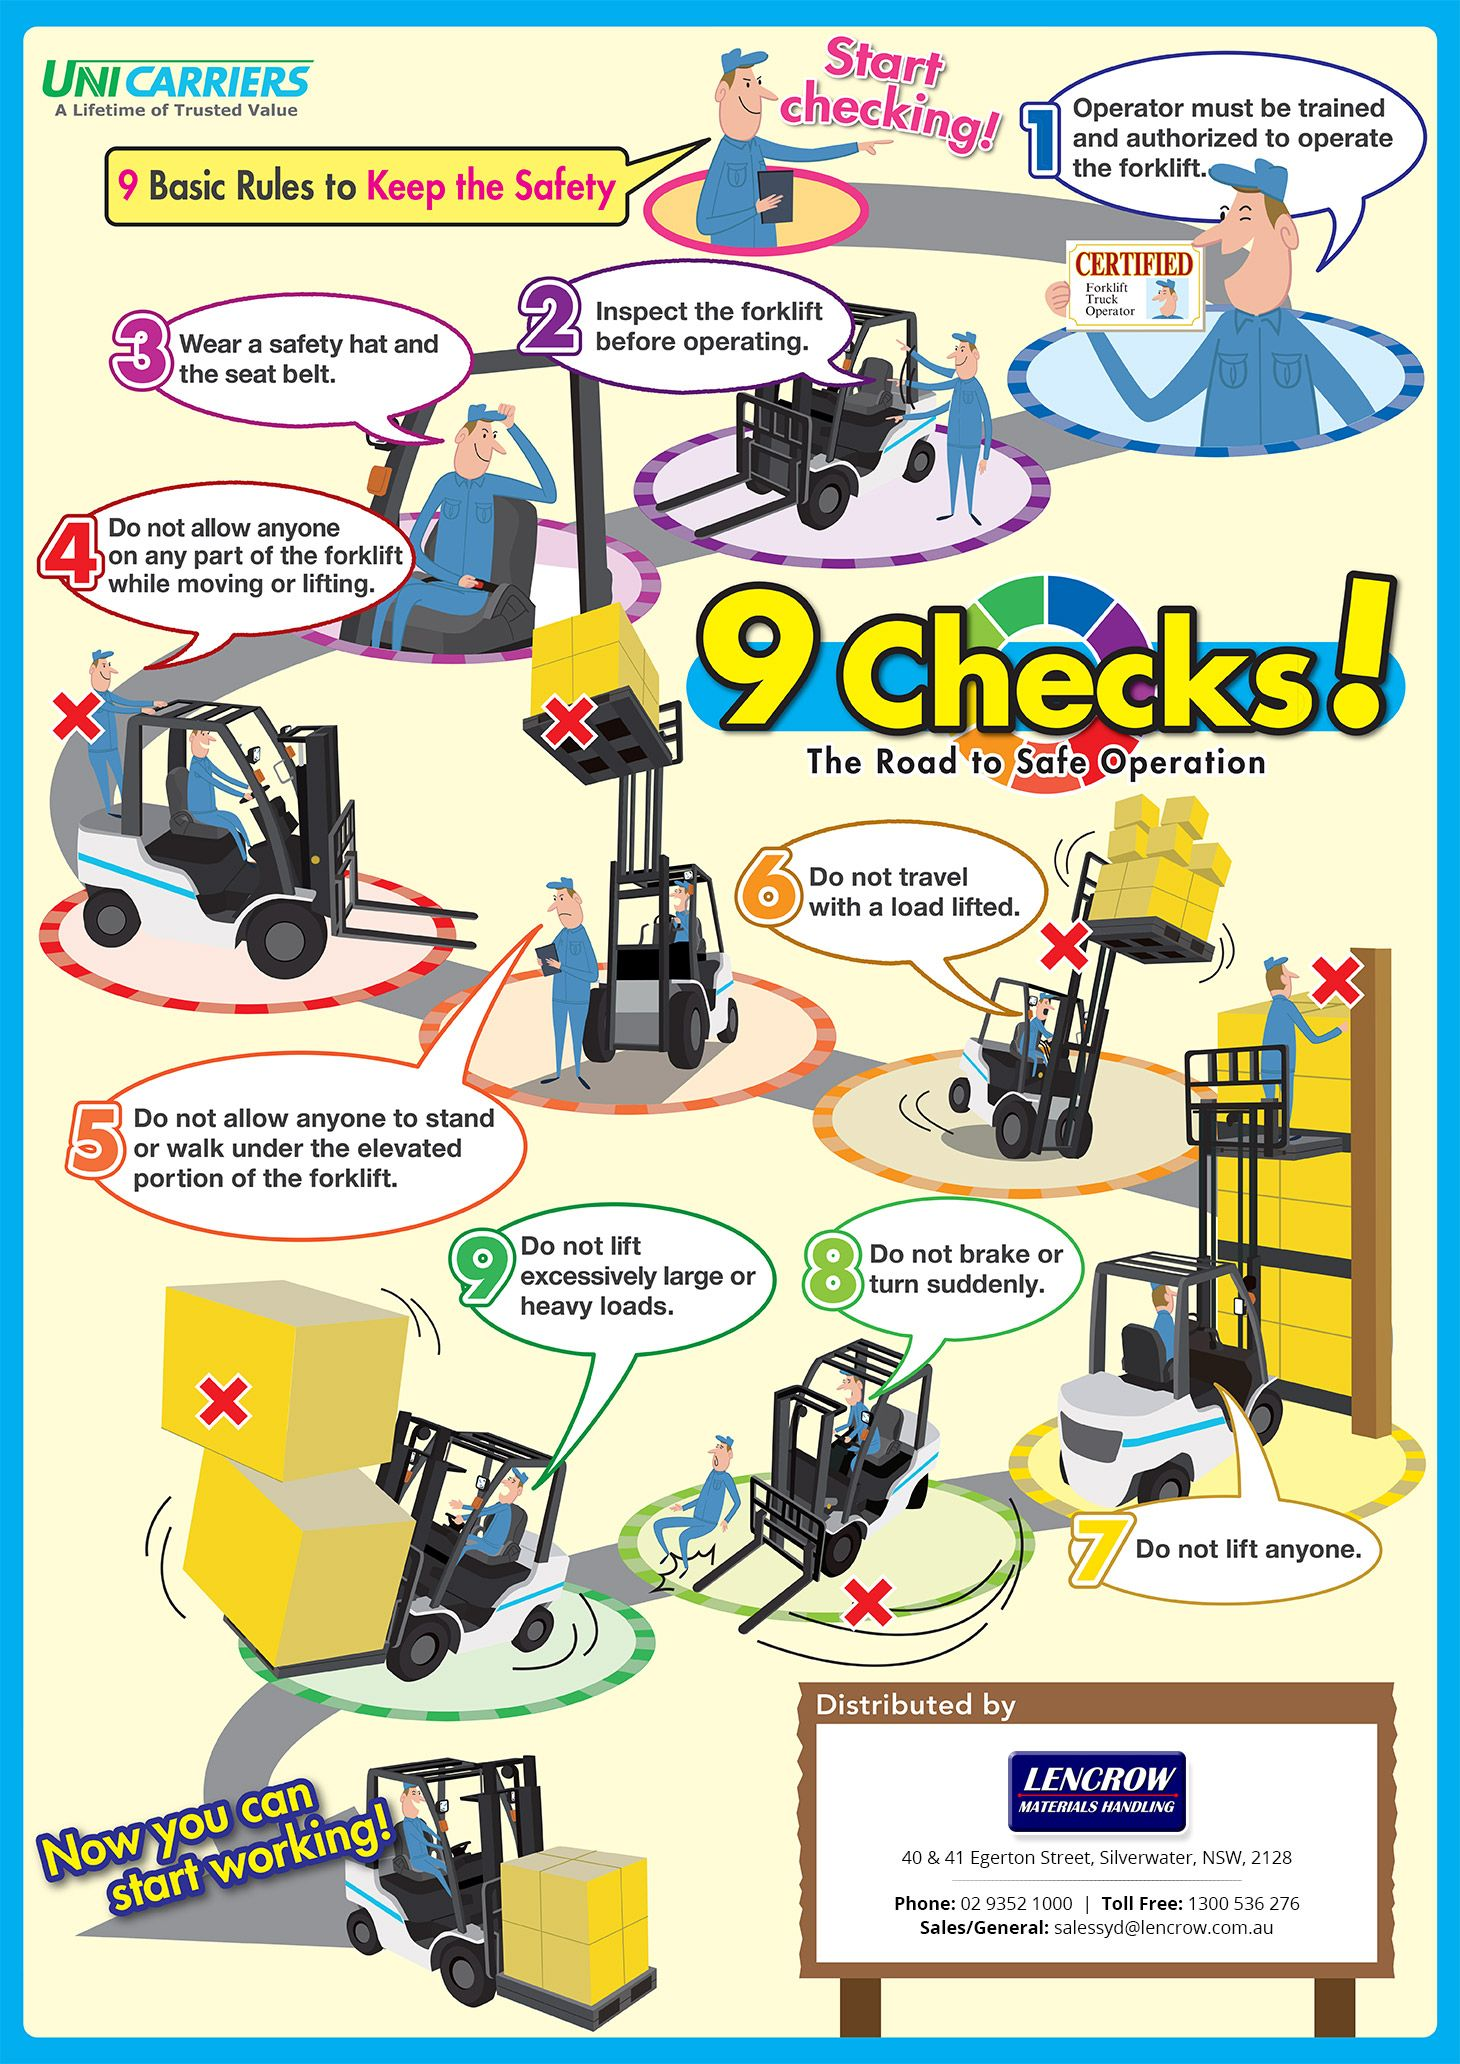 Forklift Safety Tips 9 Basic Rules To Keep The Safety